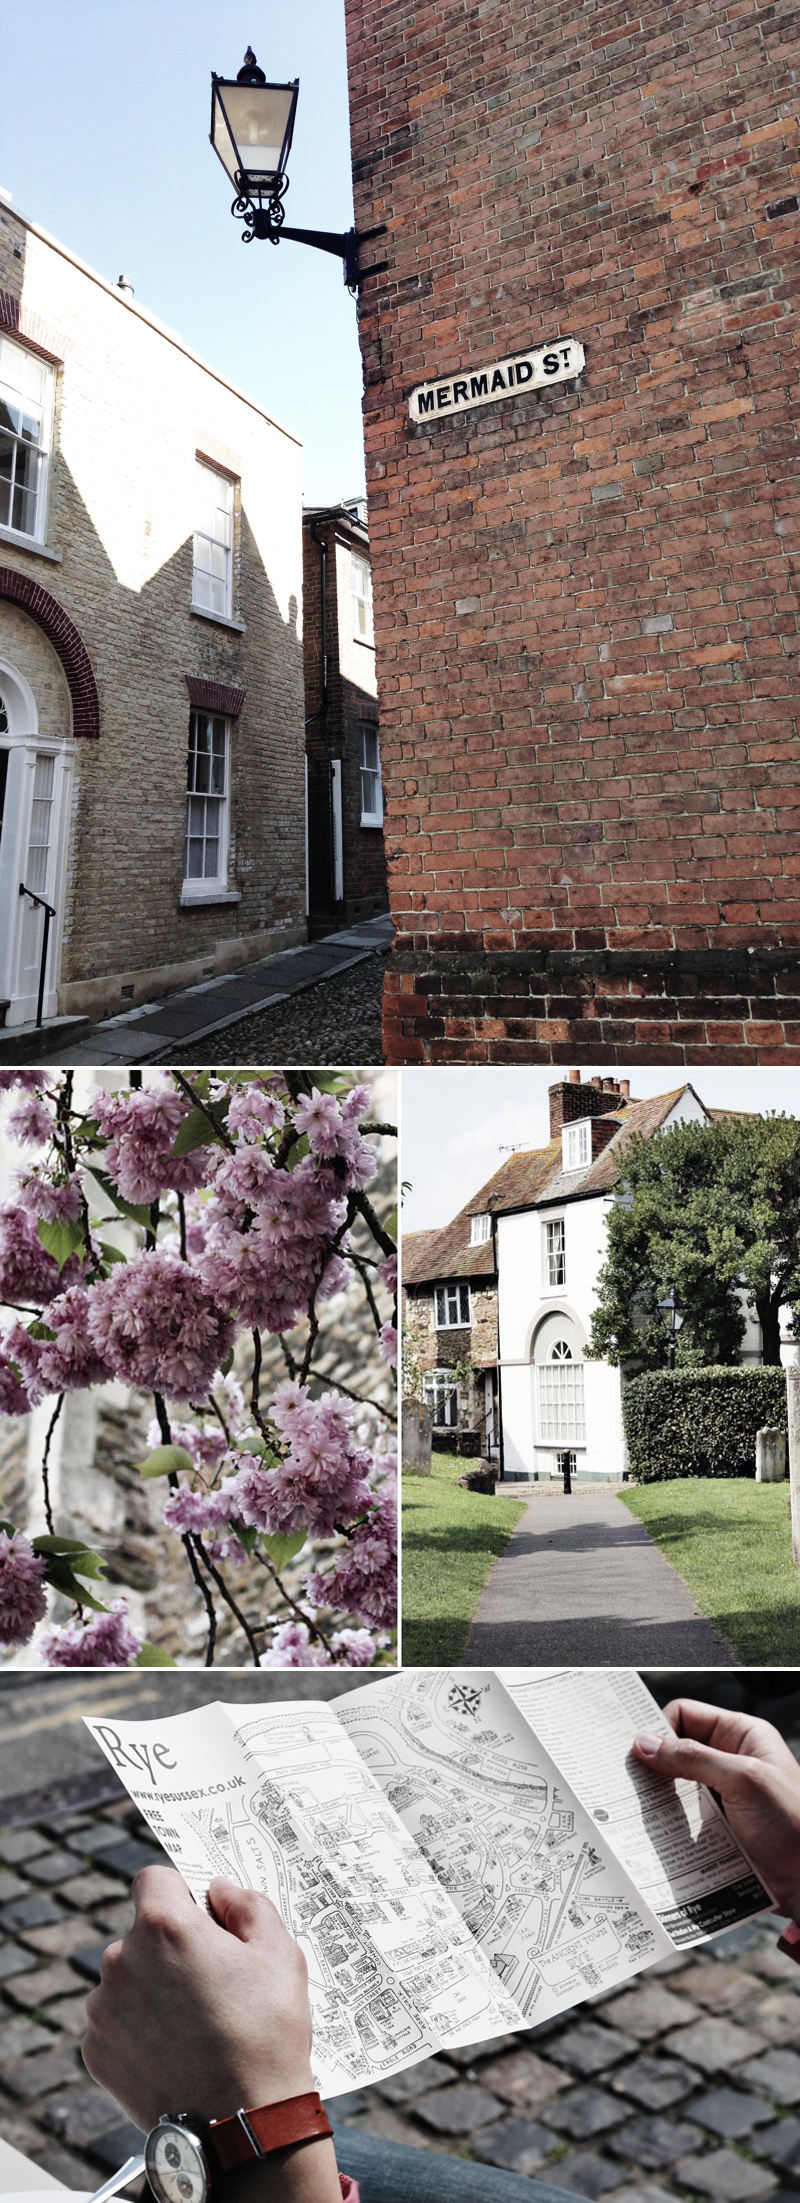 coco-wedding-venues-coco-collection-road-trip-the-george-at-rye-wedding-venues-in-east-sussex-8